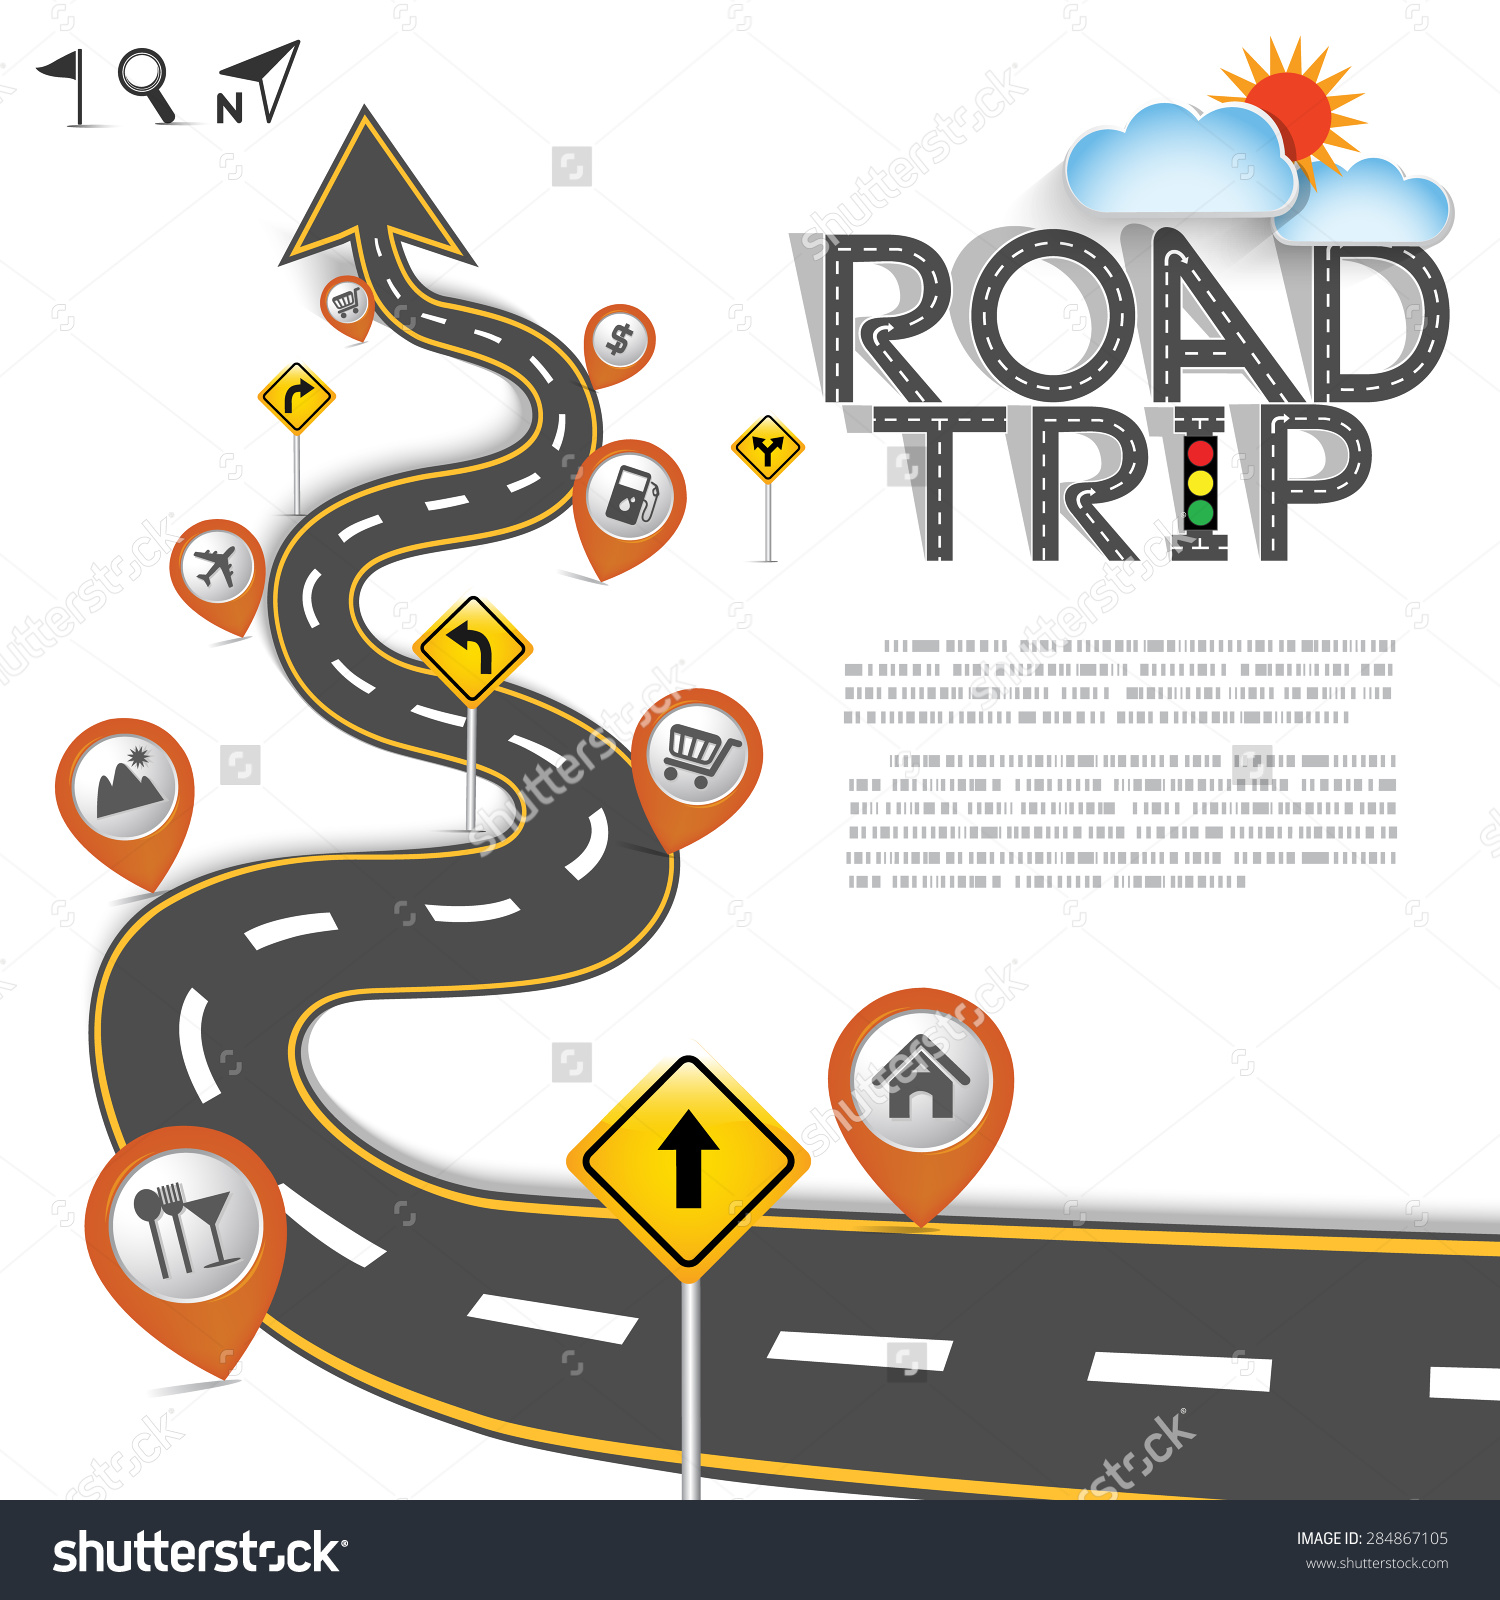 Road trip map clipart svg black and white stock Road map background clipart - ClipartFest svg black and white stock